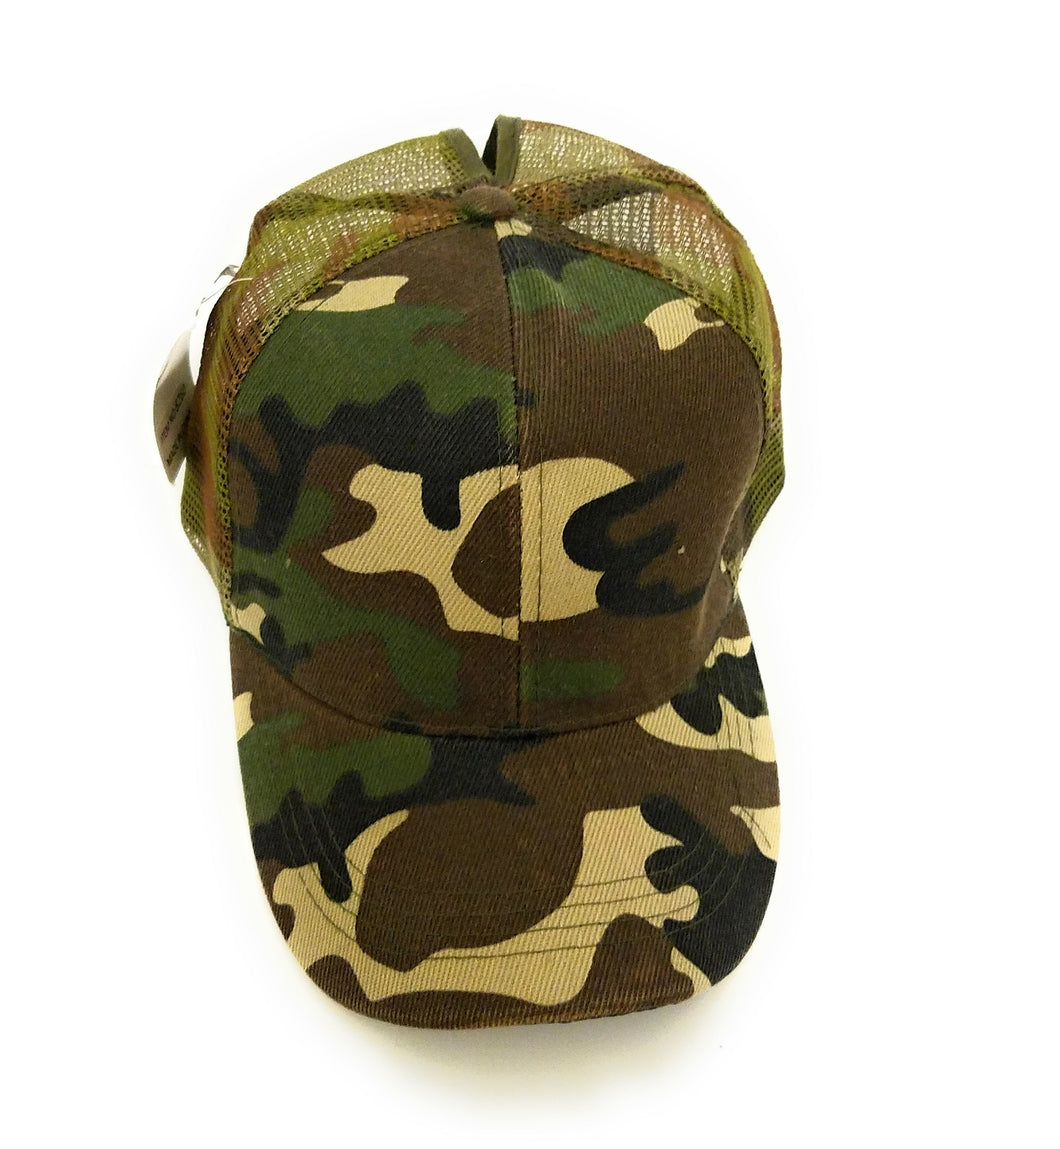 S&R Army Camo High Ponytail Bun Mesh Vented Trucker Adjustable Hat Cap Green Brown